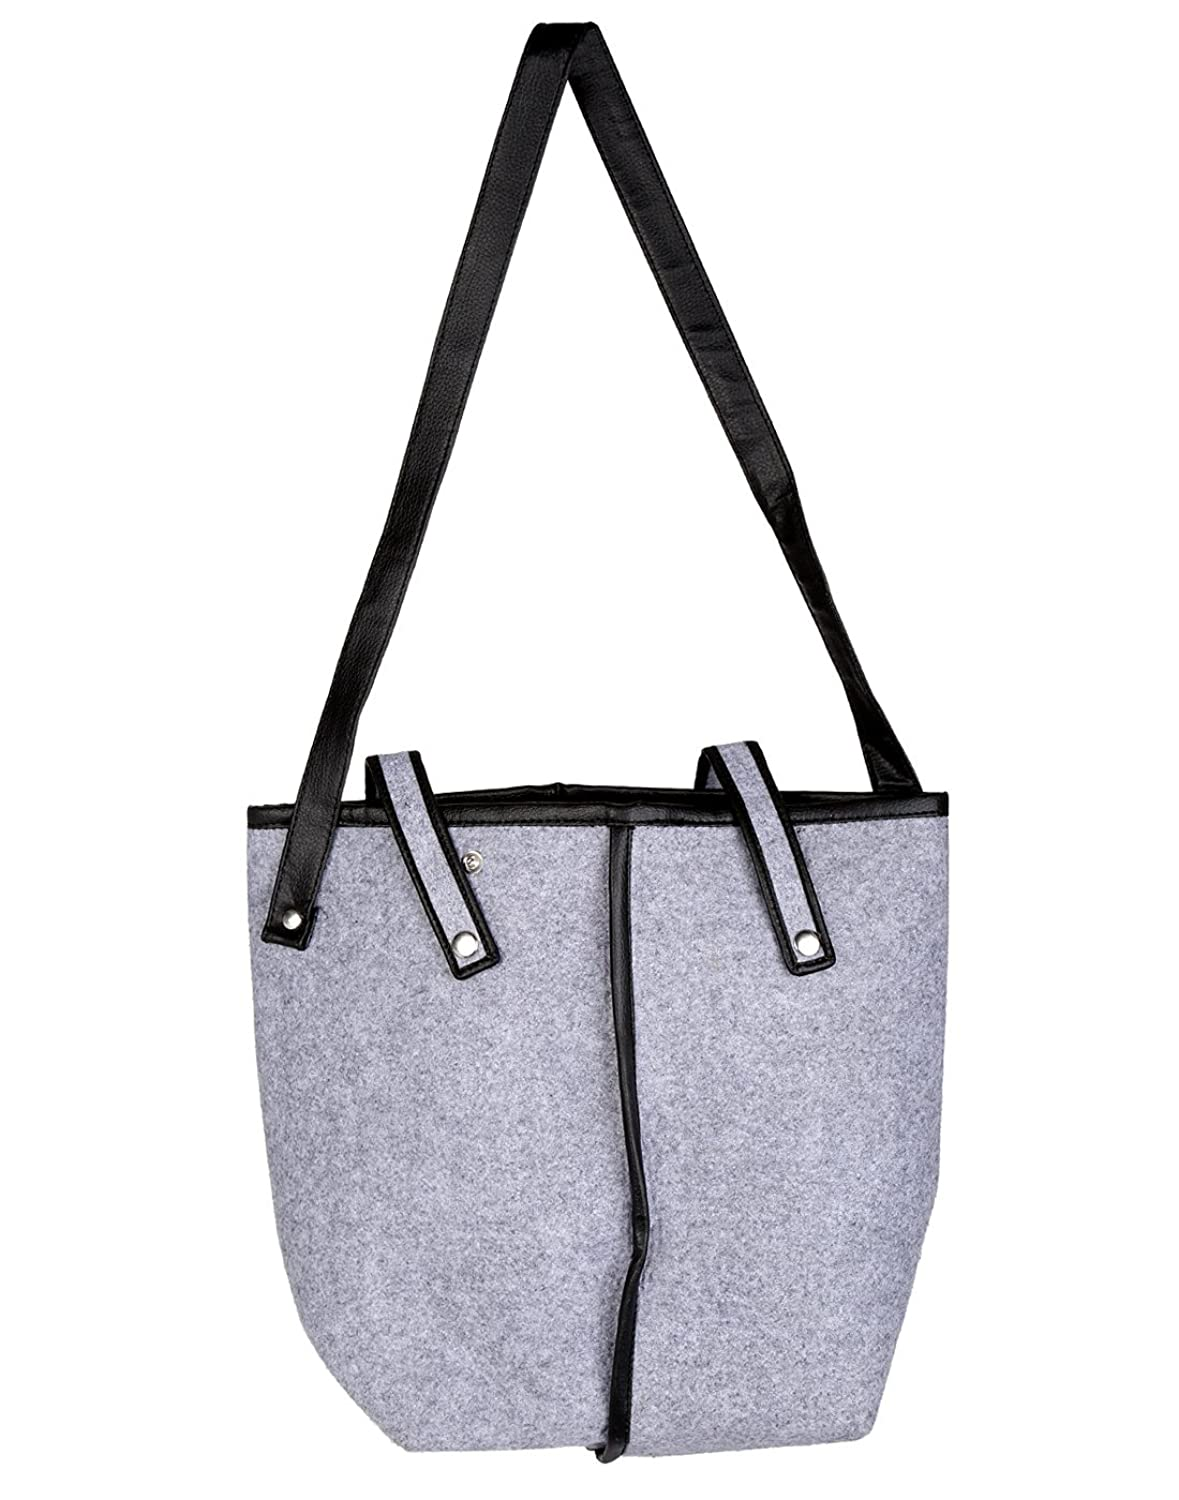 Attractive Felt & Faux Leather Gray Tote Bag Solid Dyed For Women By Rajrang